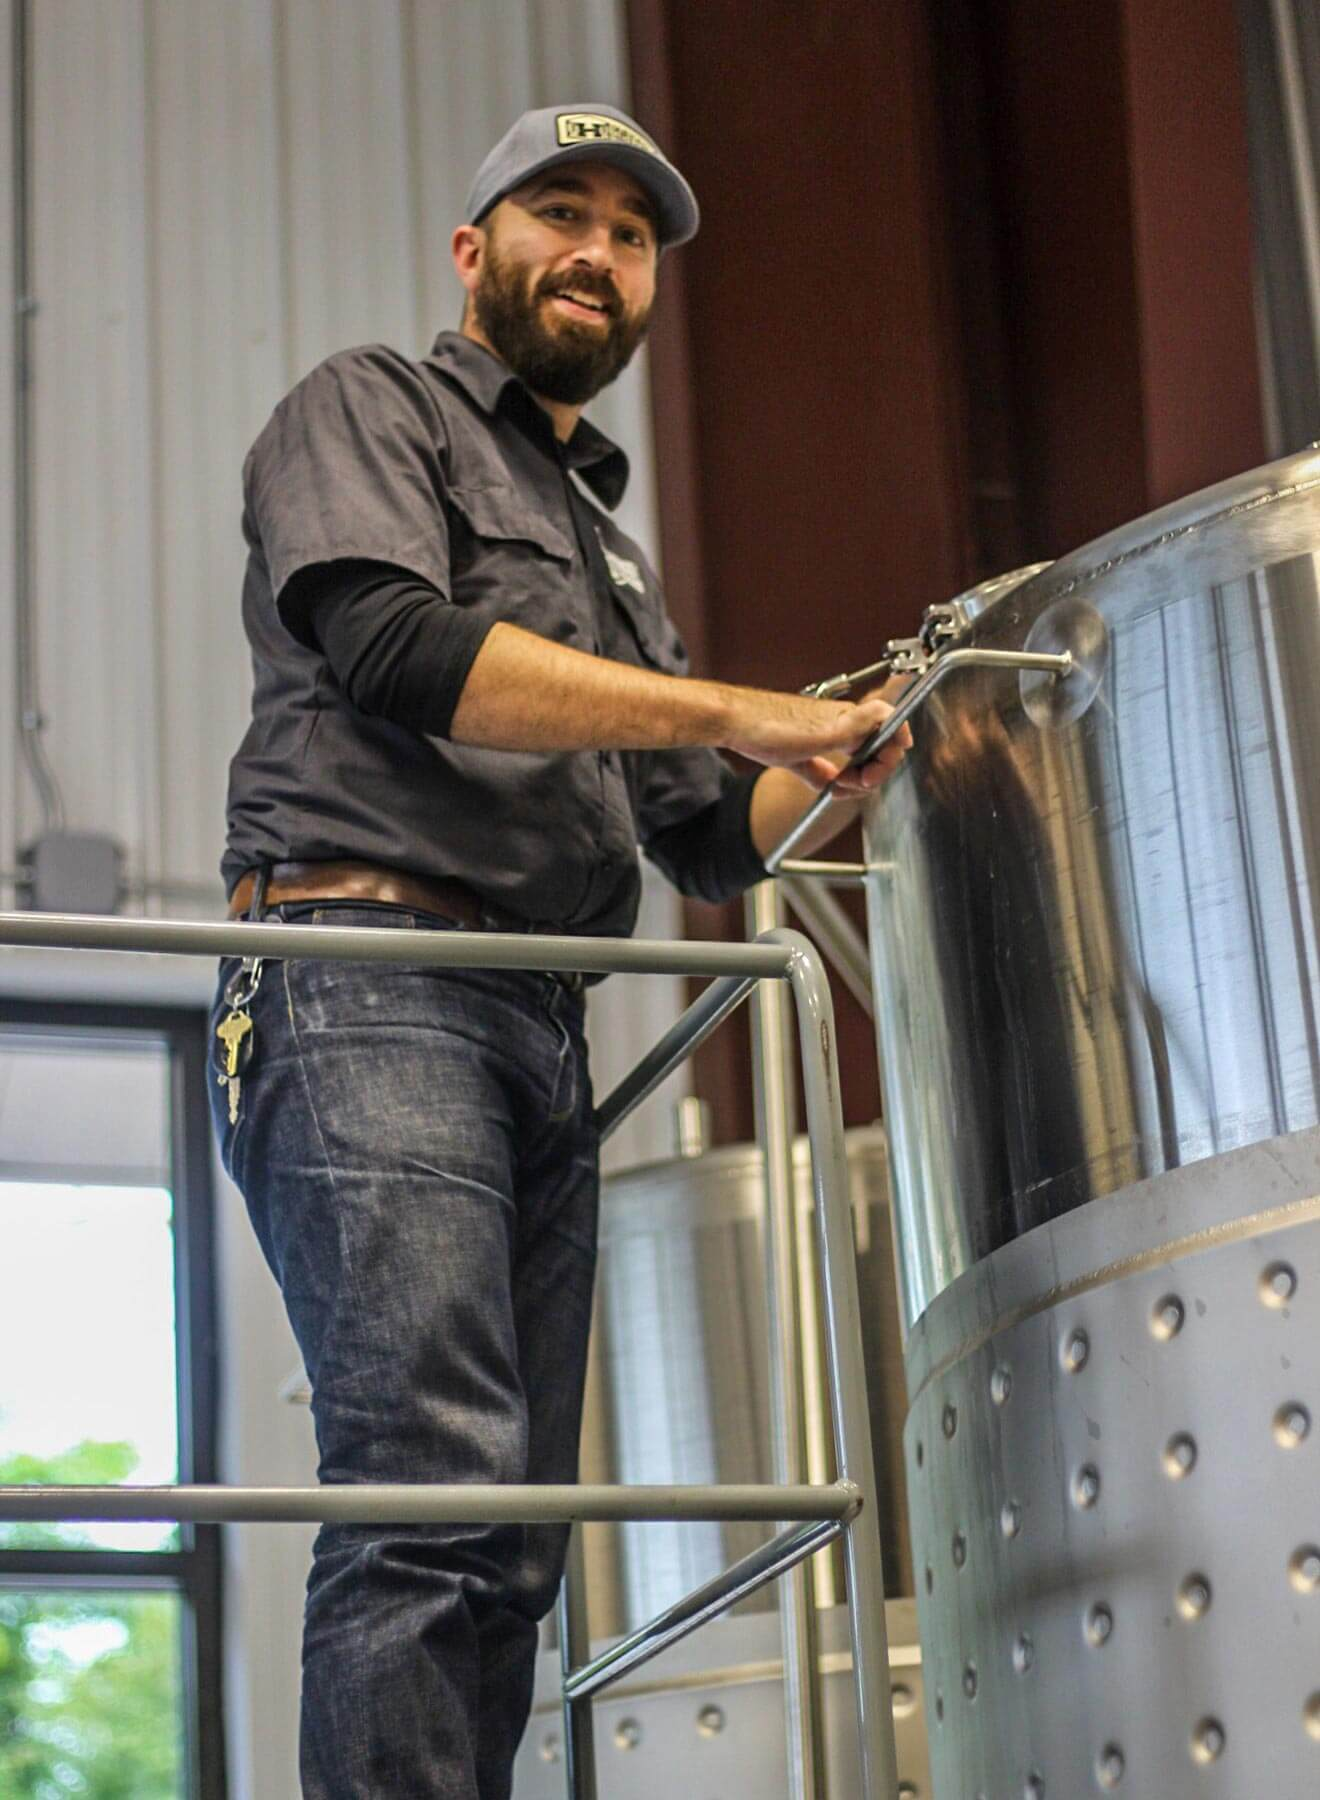 Chris Roedel of Hatch Distilling